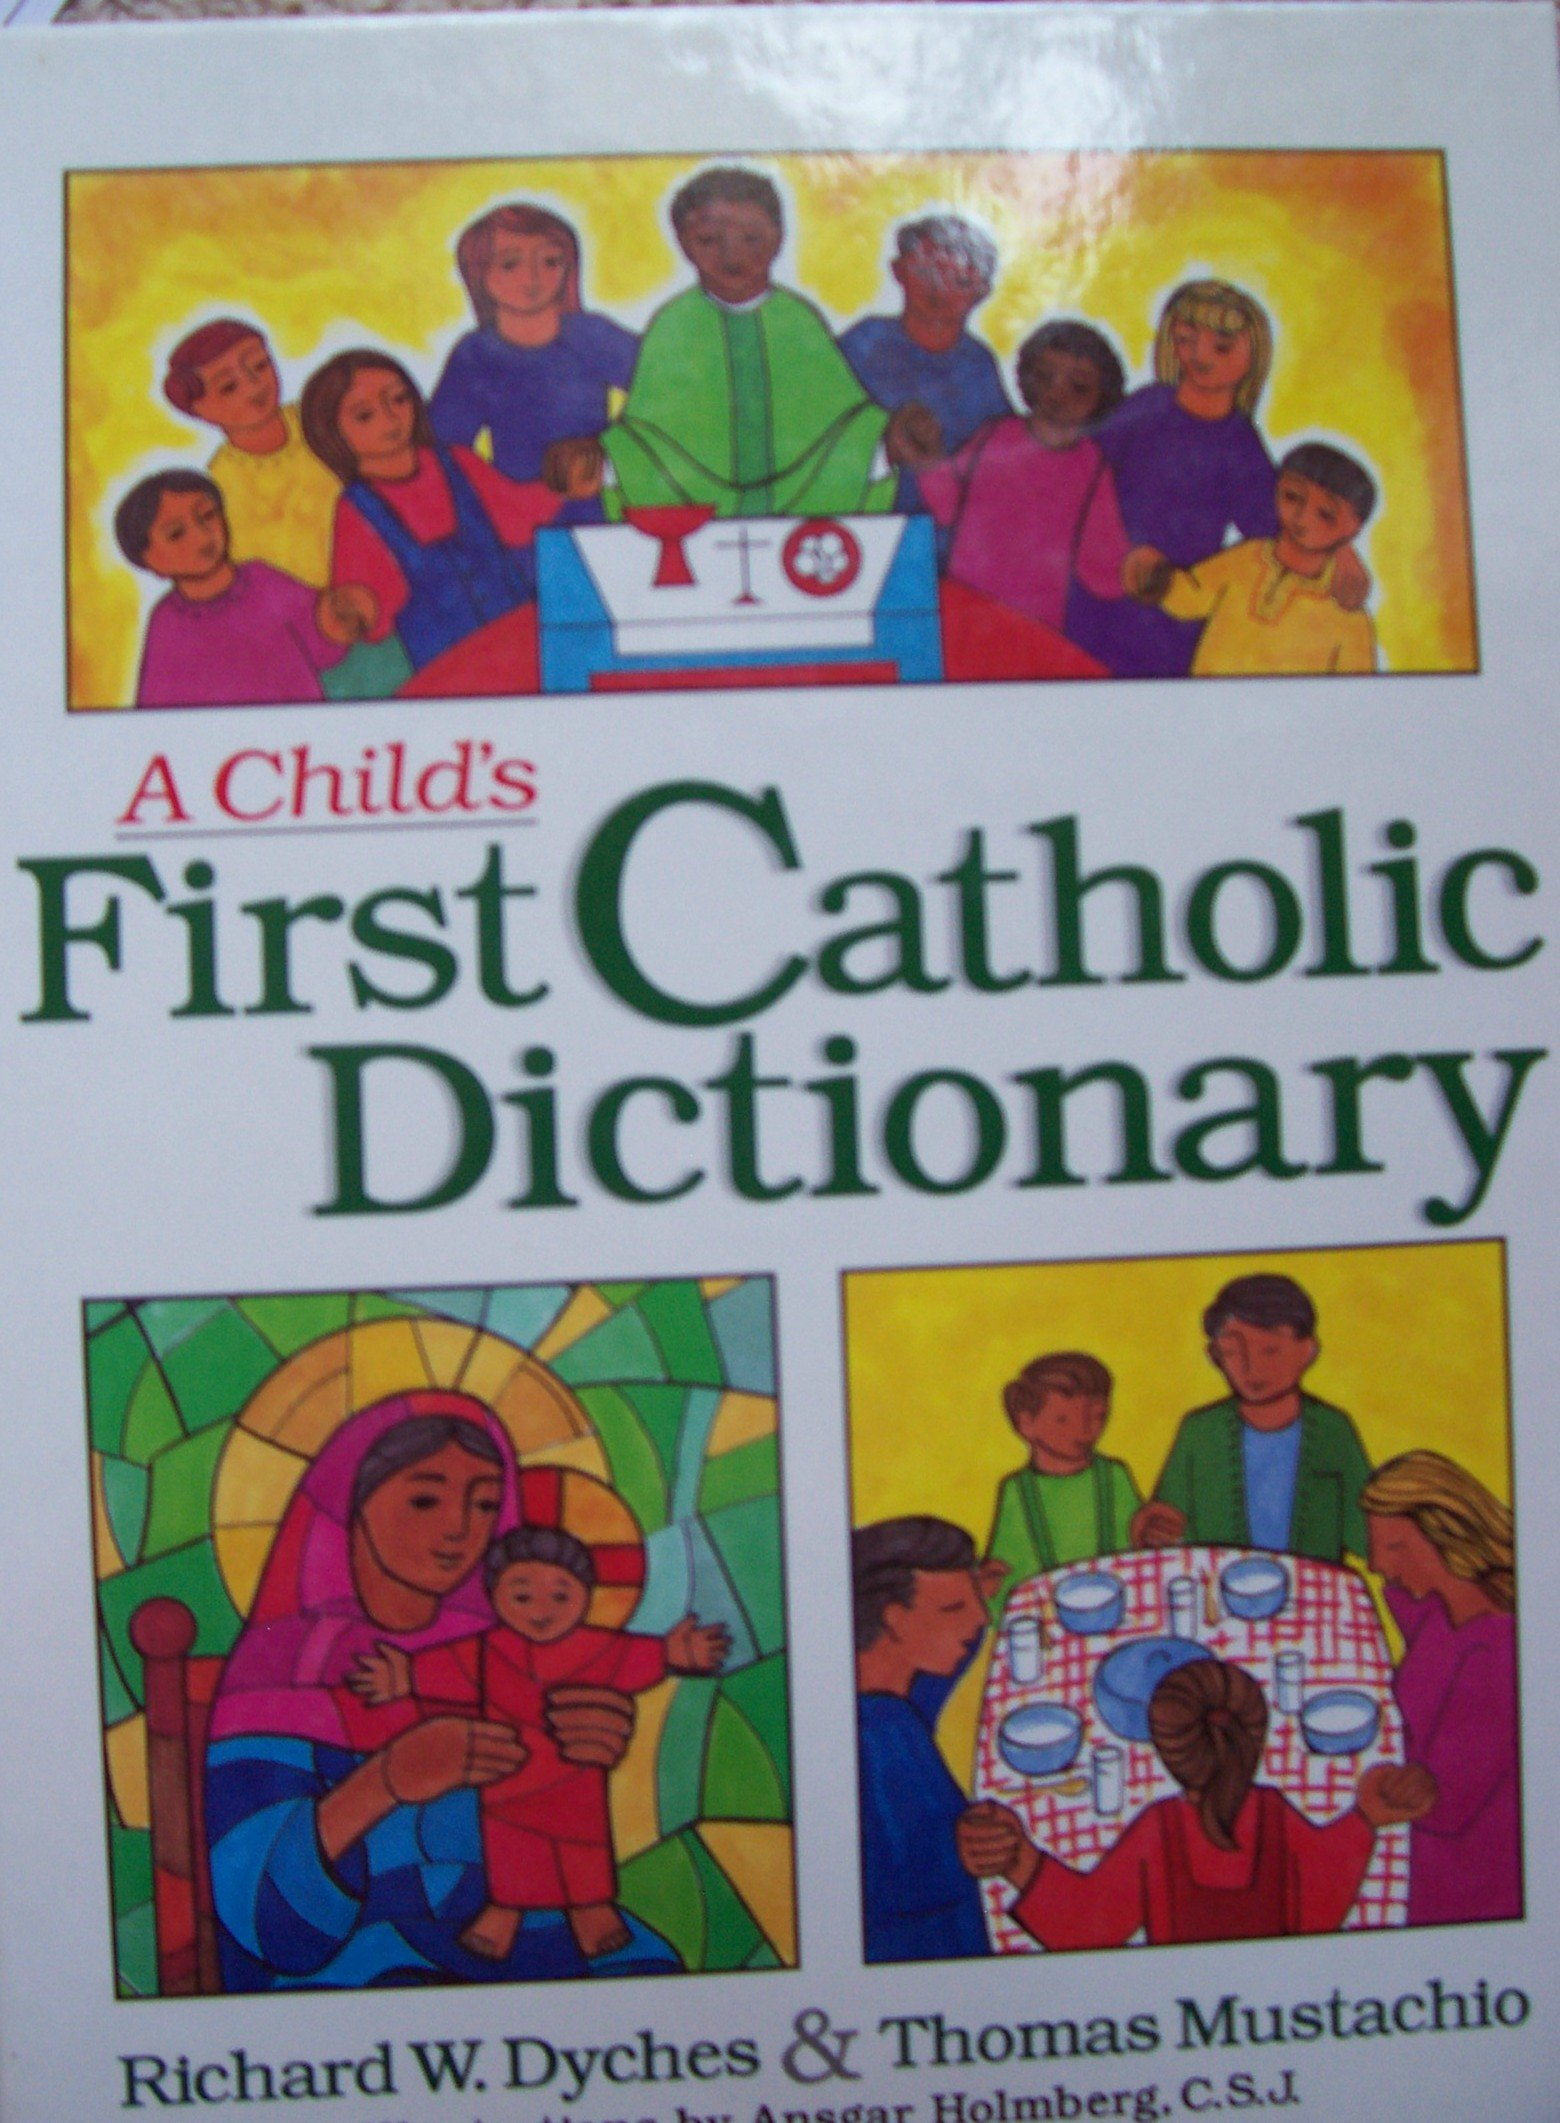 A Child's First Catholic Dictionary